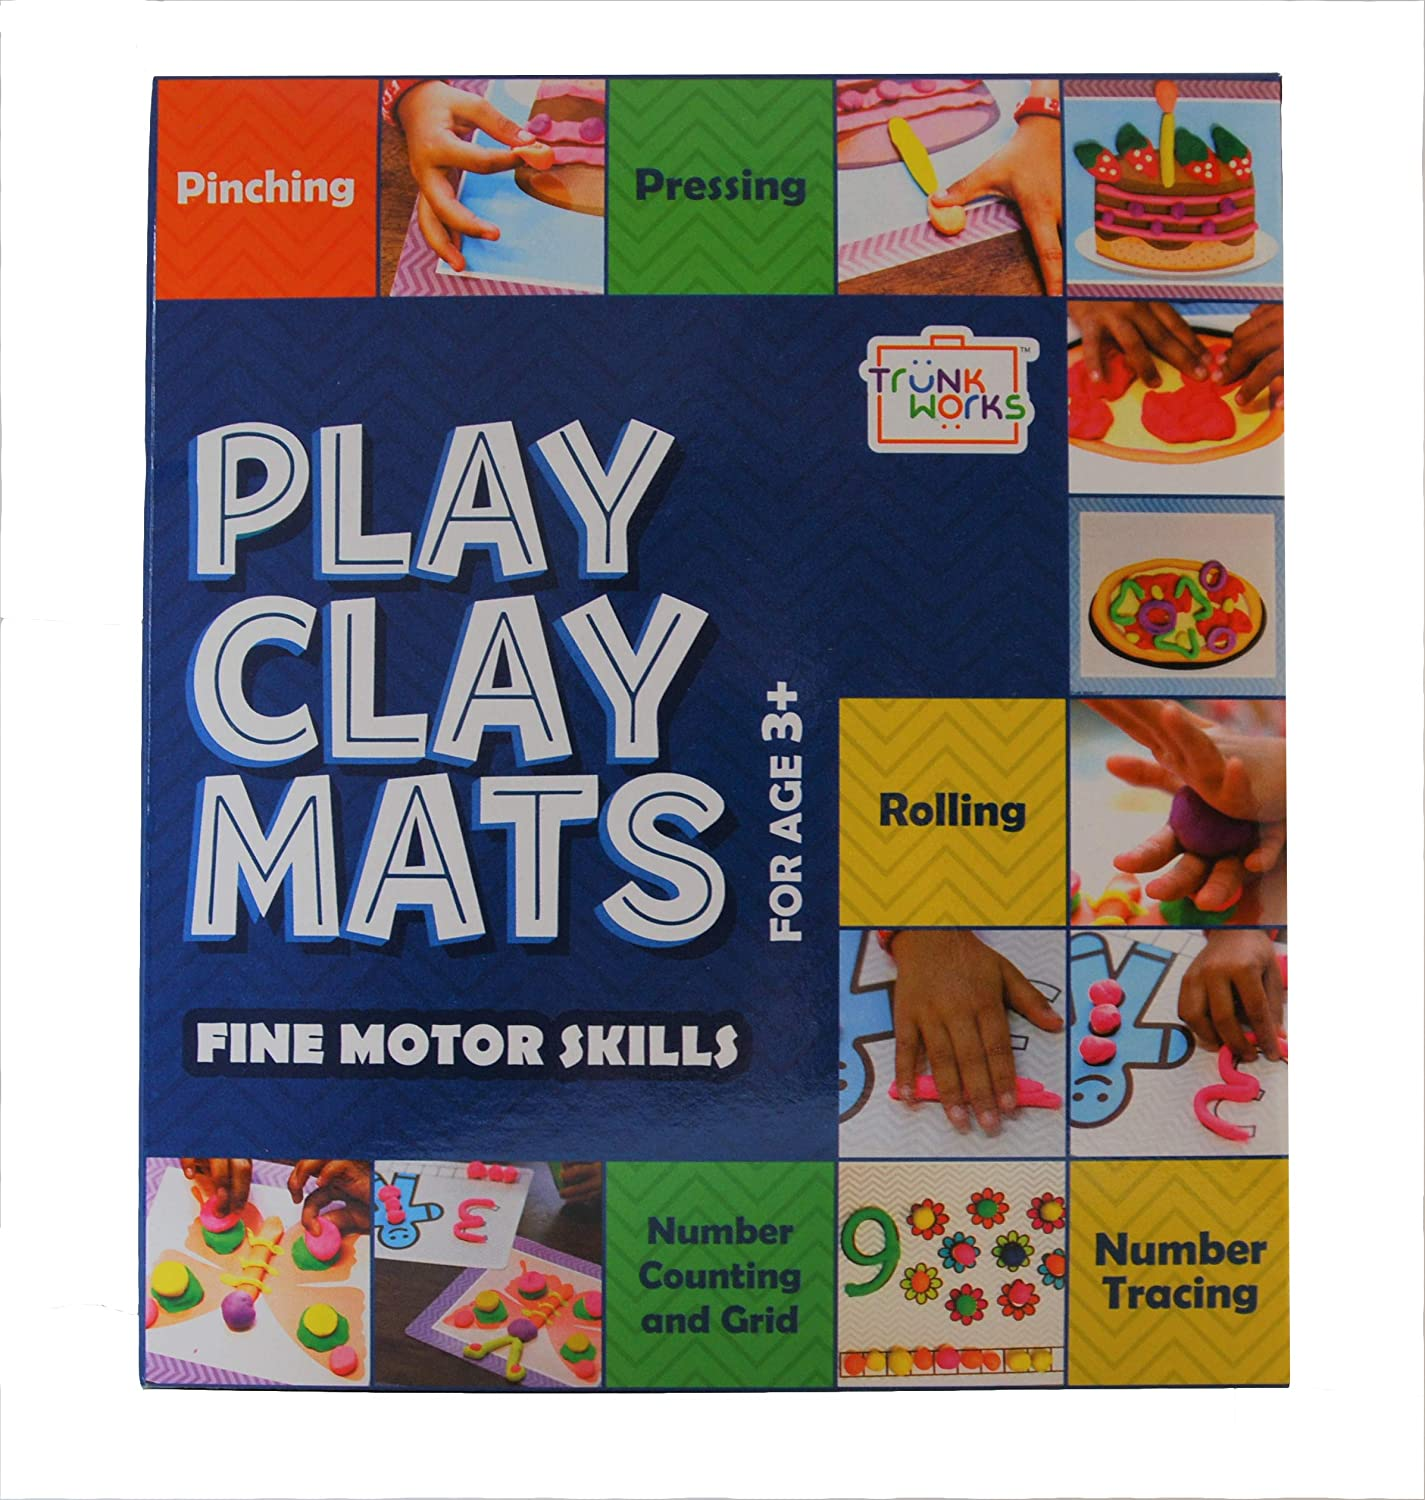 Amazon Com Trunk Works Playclay Mats To Be Played With Clay Or Play Doh Or Play Dough Develops Fine Motor Skills Numbers Imagination And Creativity Unique Creative Prompts Toys Games